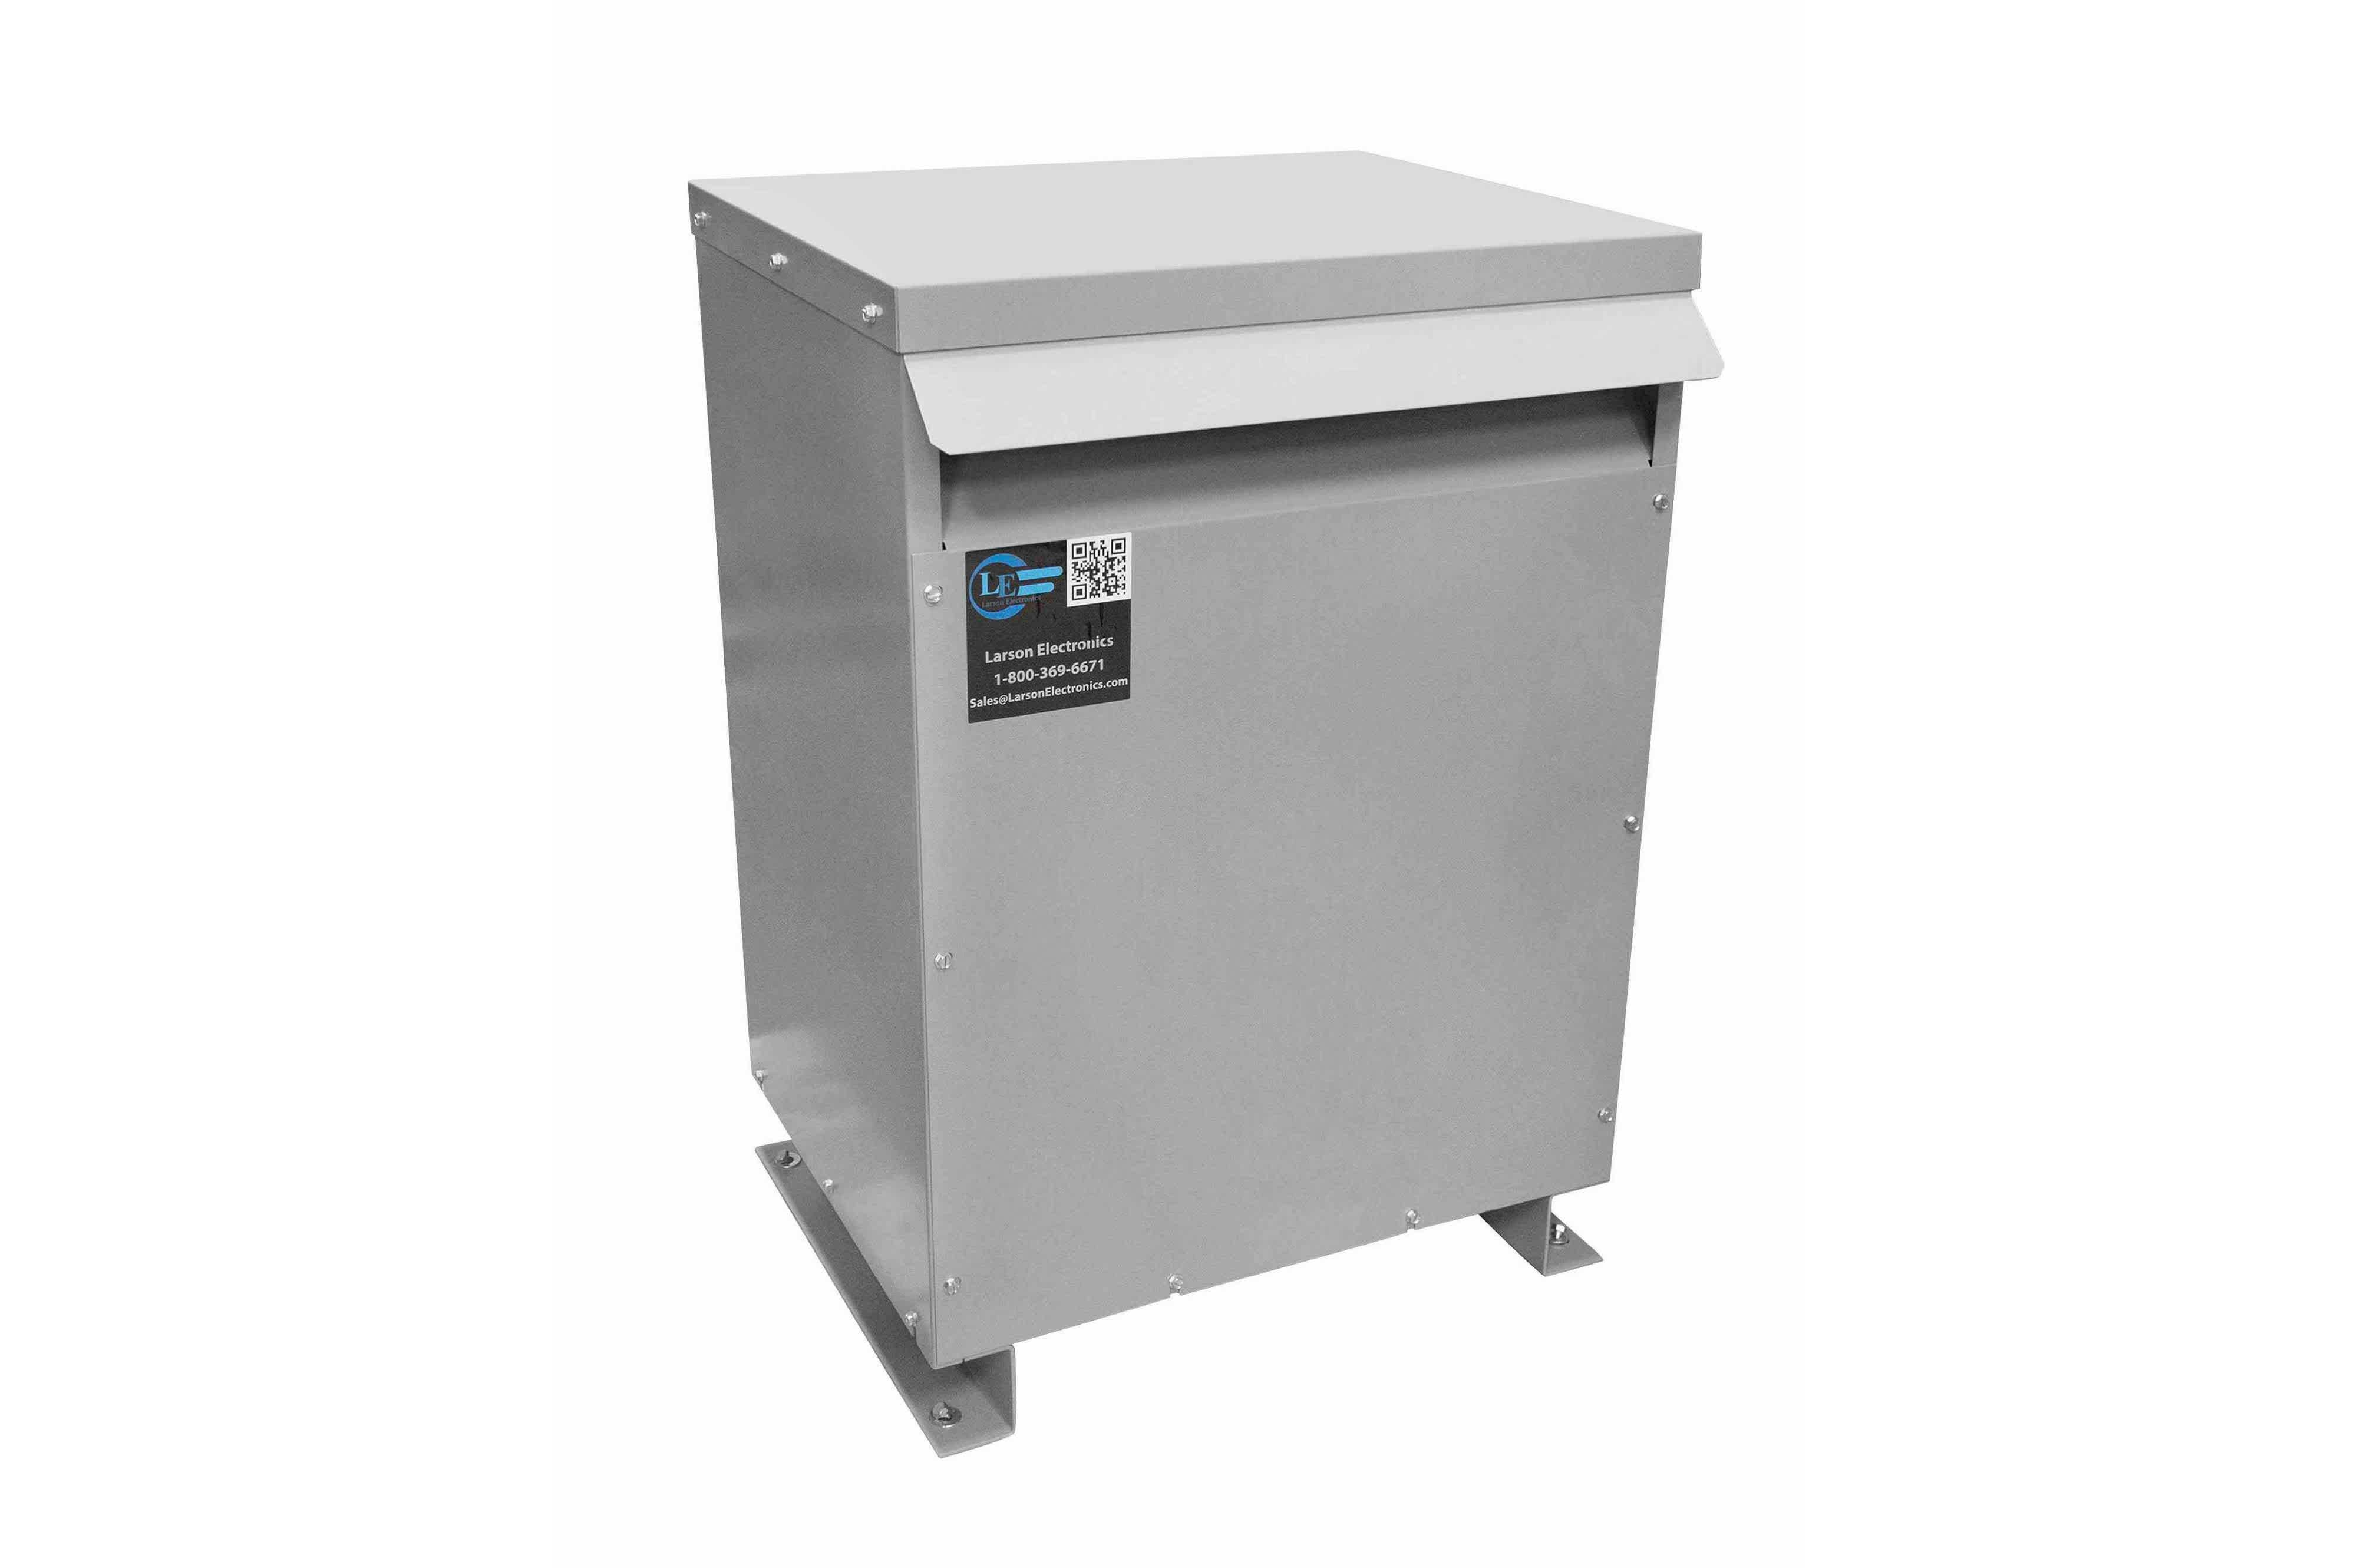 137.5 kVA 3PH Isolation Transformer, 575V Wye Primary, 380Y/220 Wye-N Secondary, N3R, Ventilated, 60 Hz